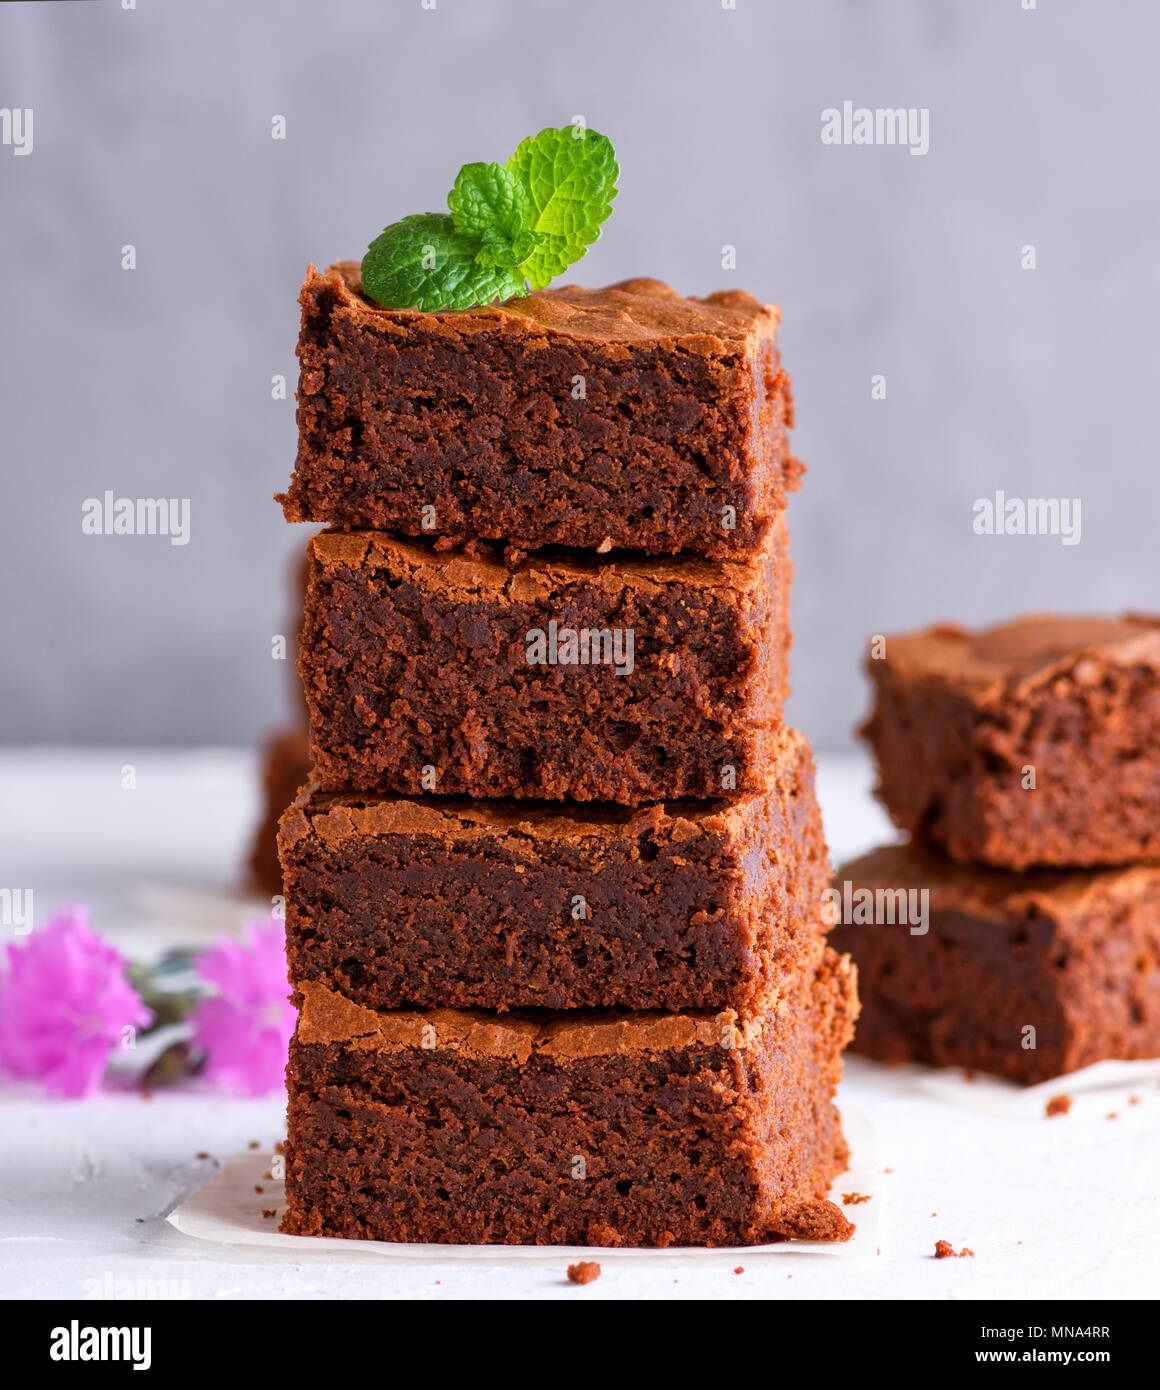 pile of square slices of baked brownie pie on a white surface, close up - Stock Image